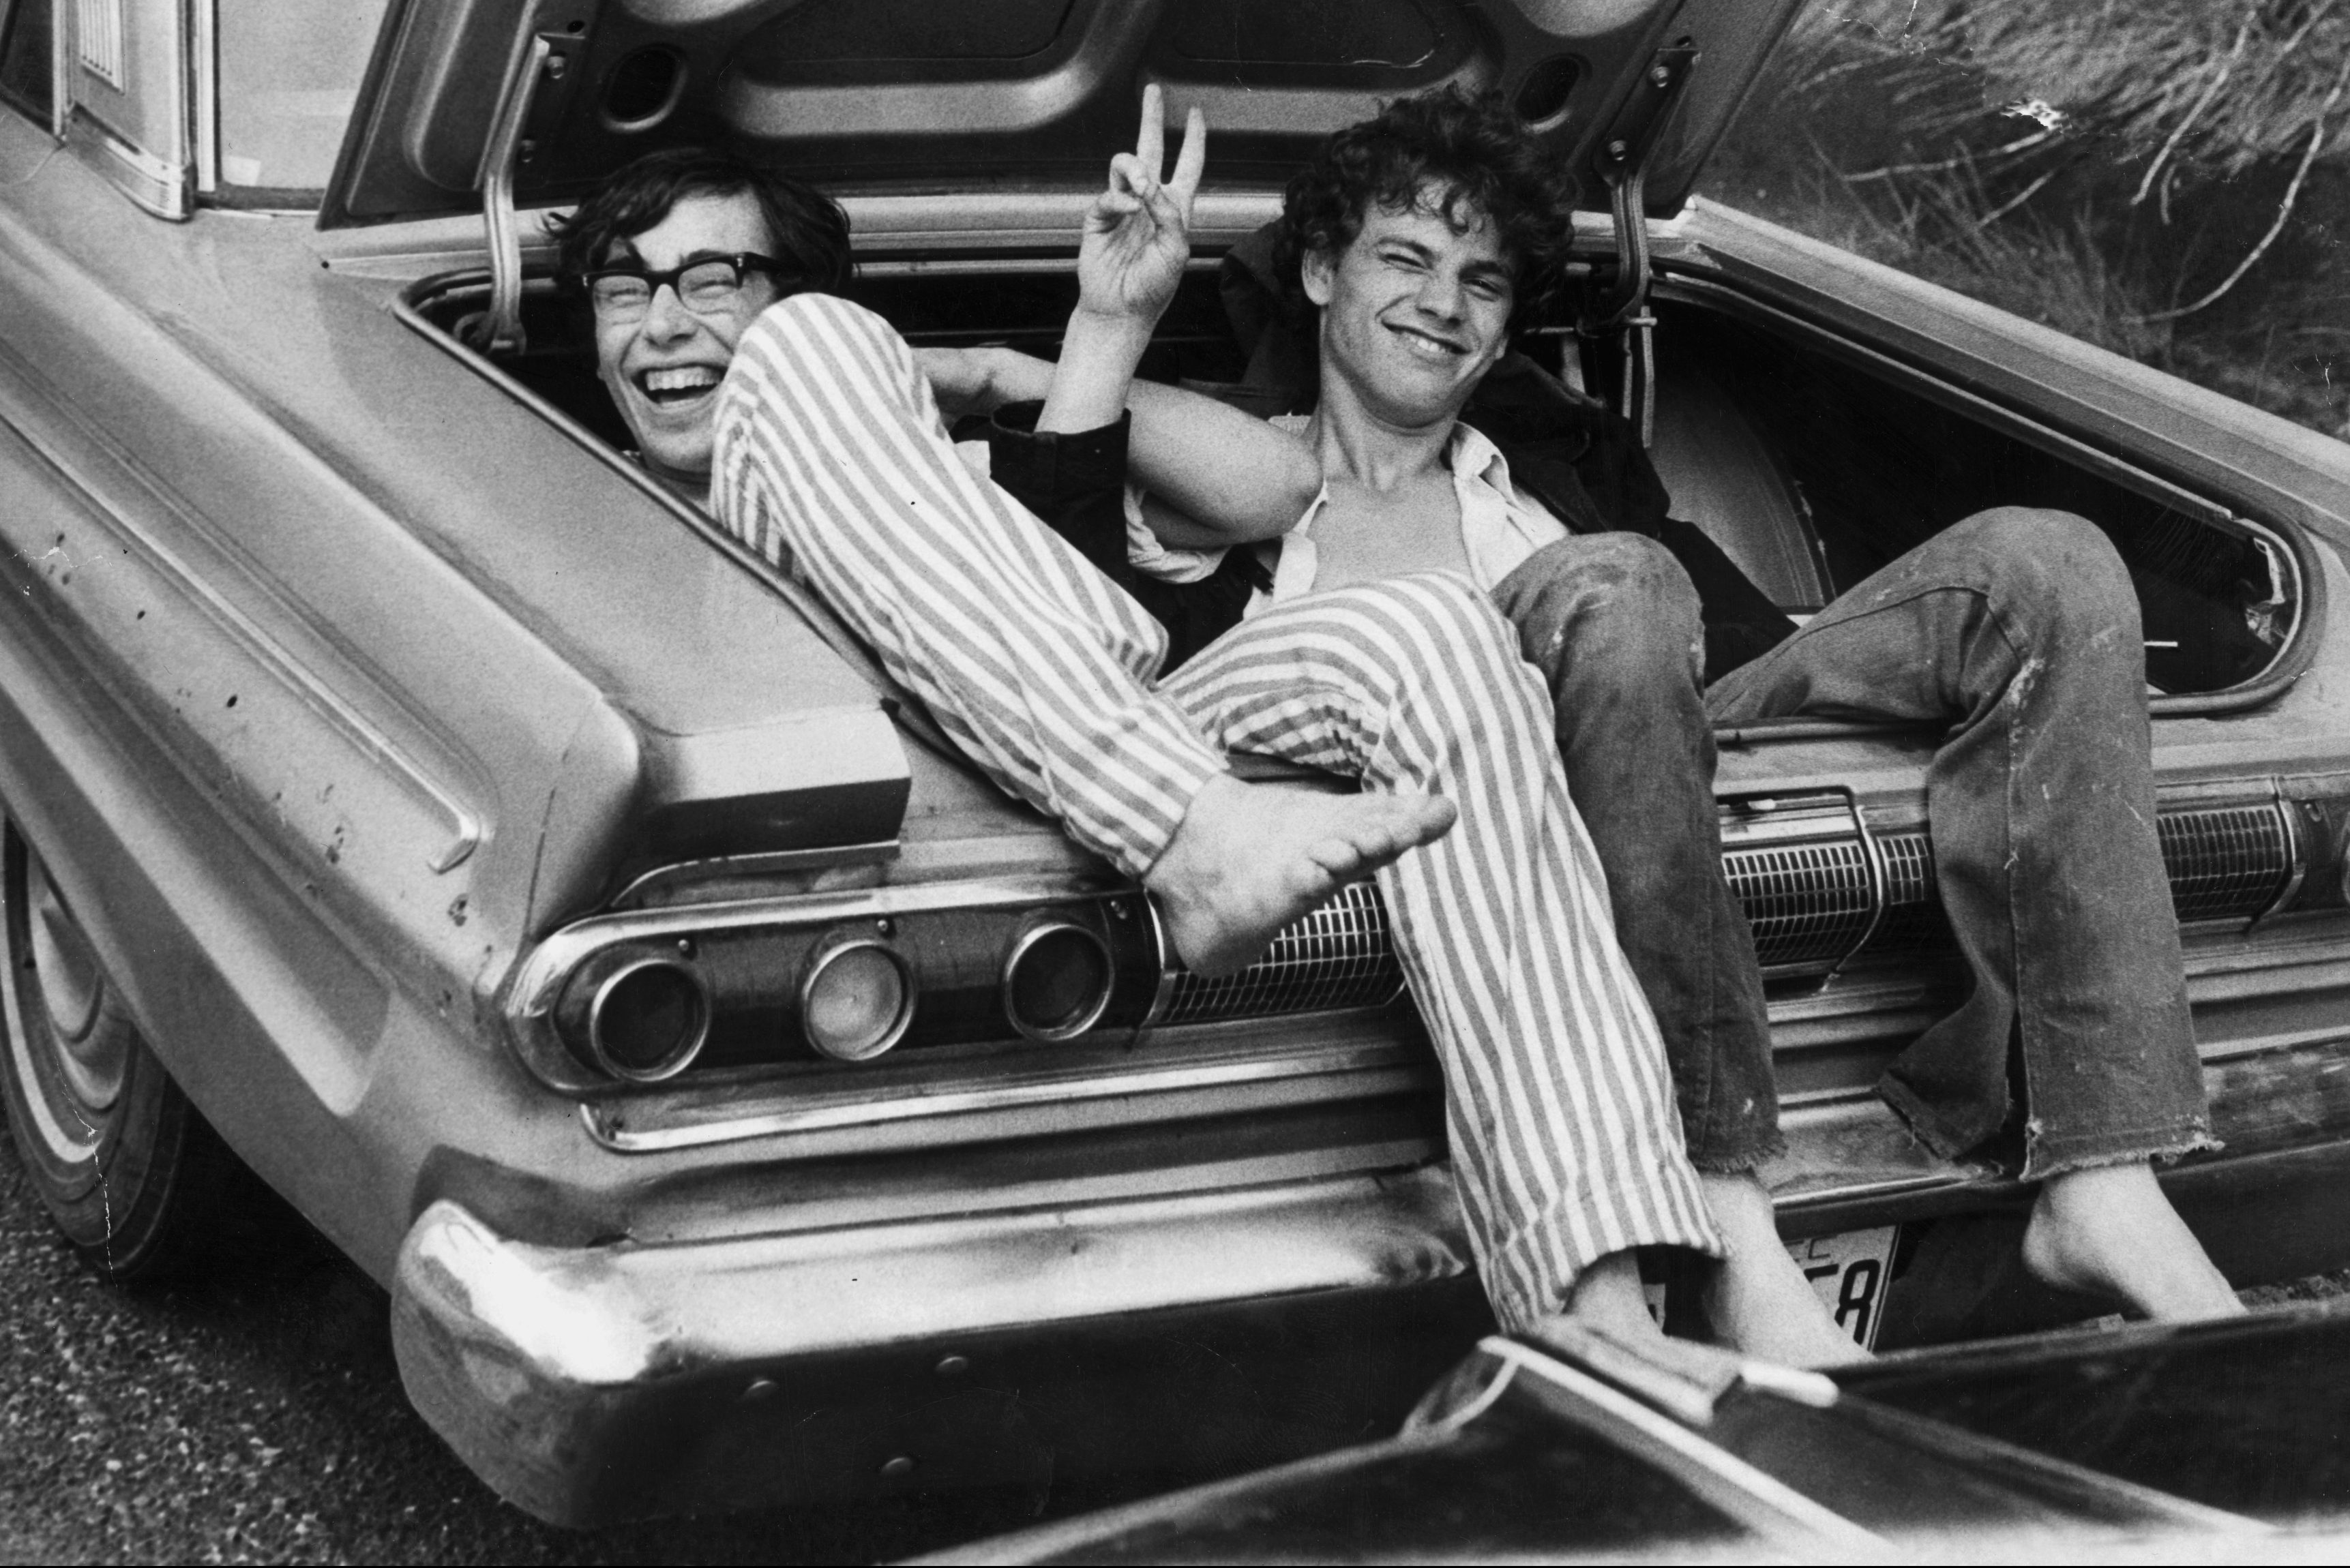 Black and white photo from 1969 of two young men sitting in the trunk of a car, making the peace sign with their hands